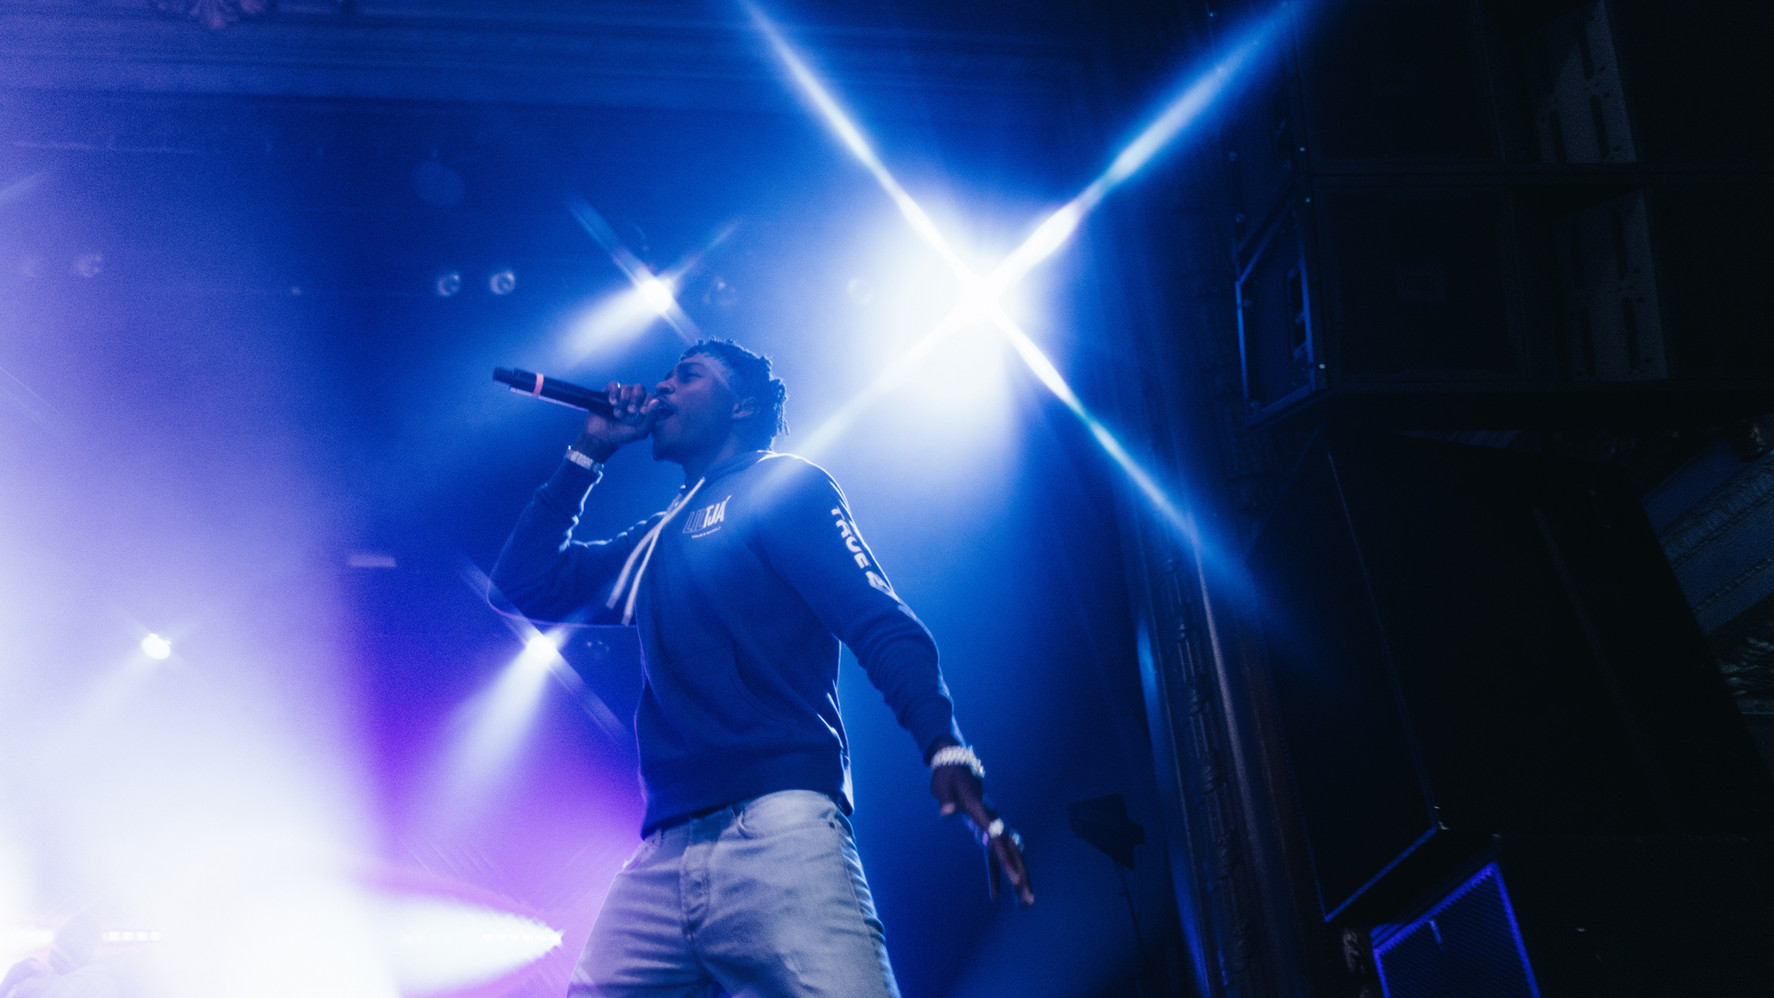 2.6.2020 Lil Tjay | Regency Ballroom, SF, CA | Photgrapher: Samuel Altamirano - Goldenvoice